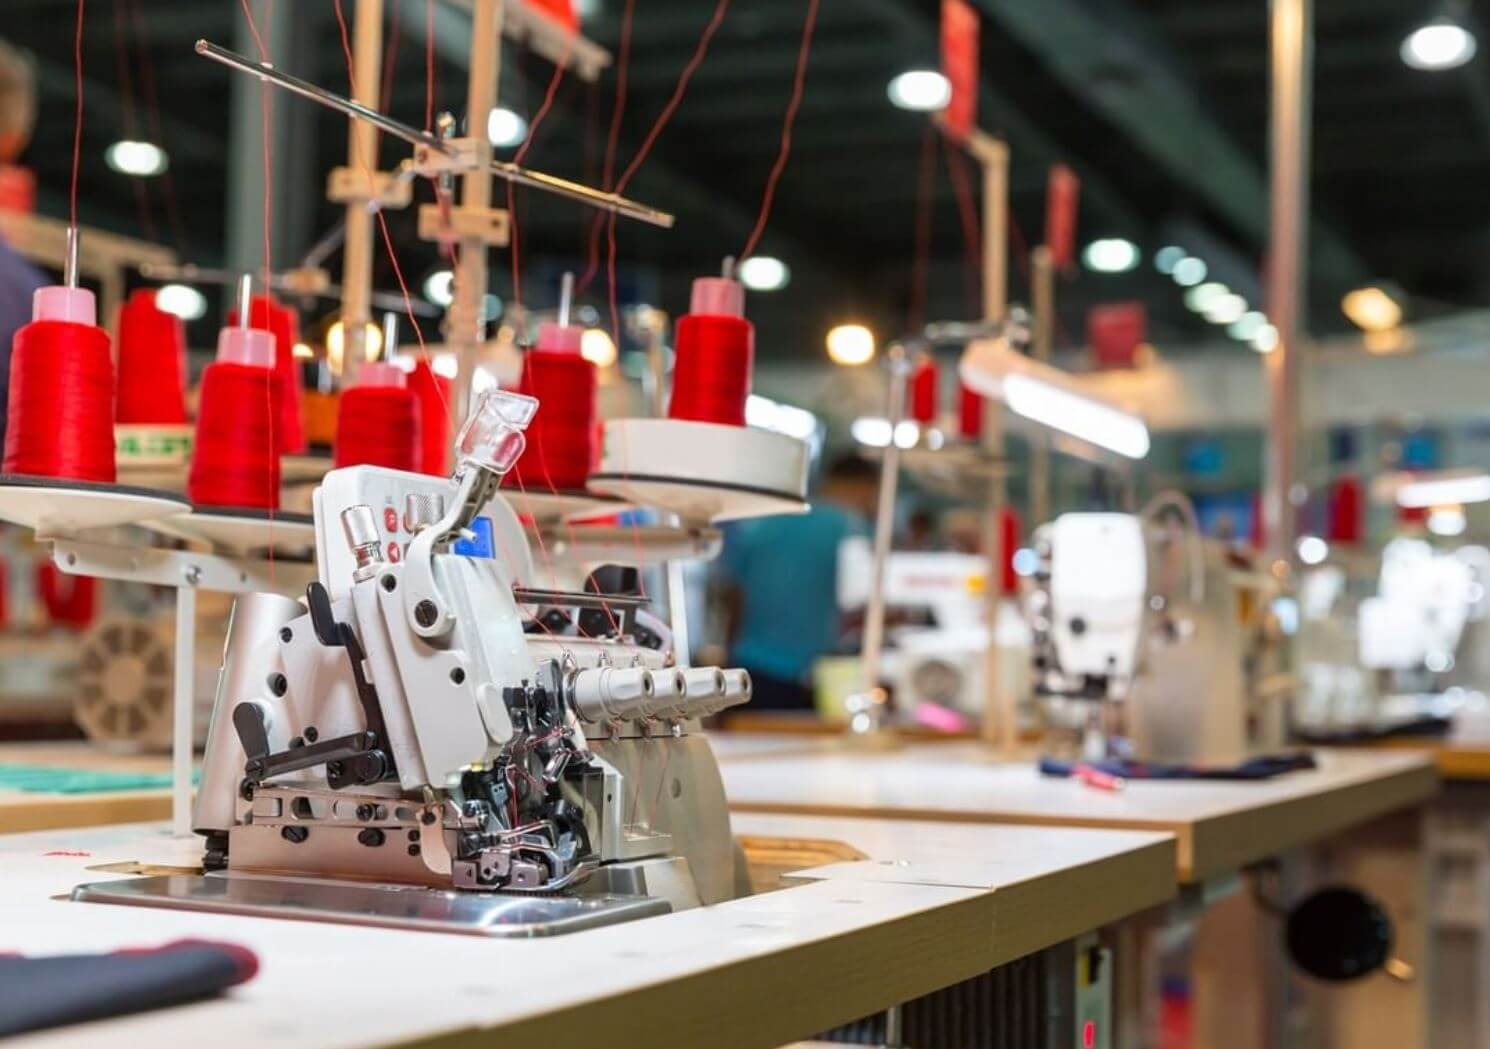 Apparel Production Faces of Manufacturing Factory Floor